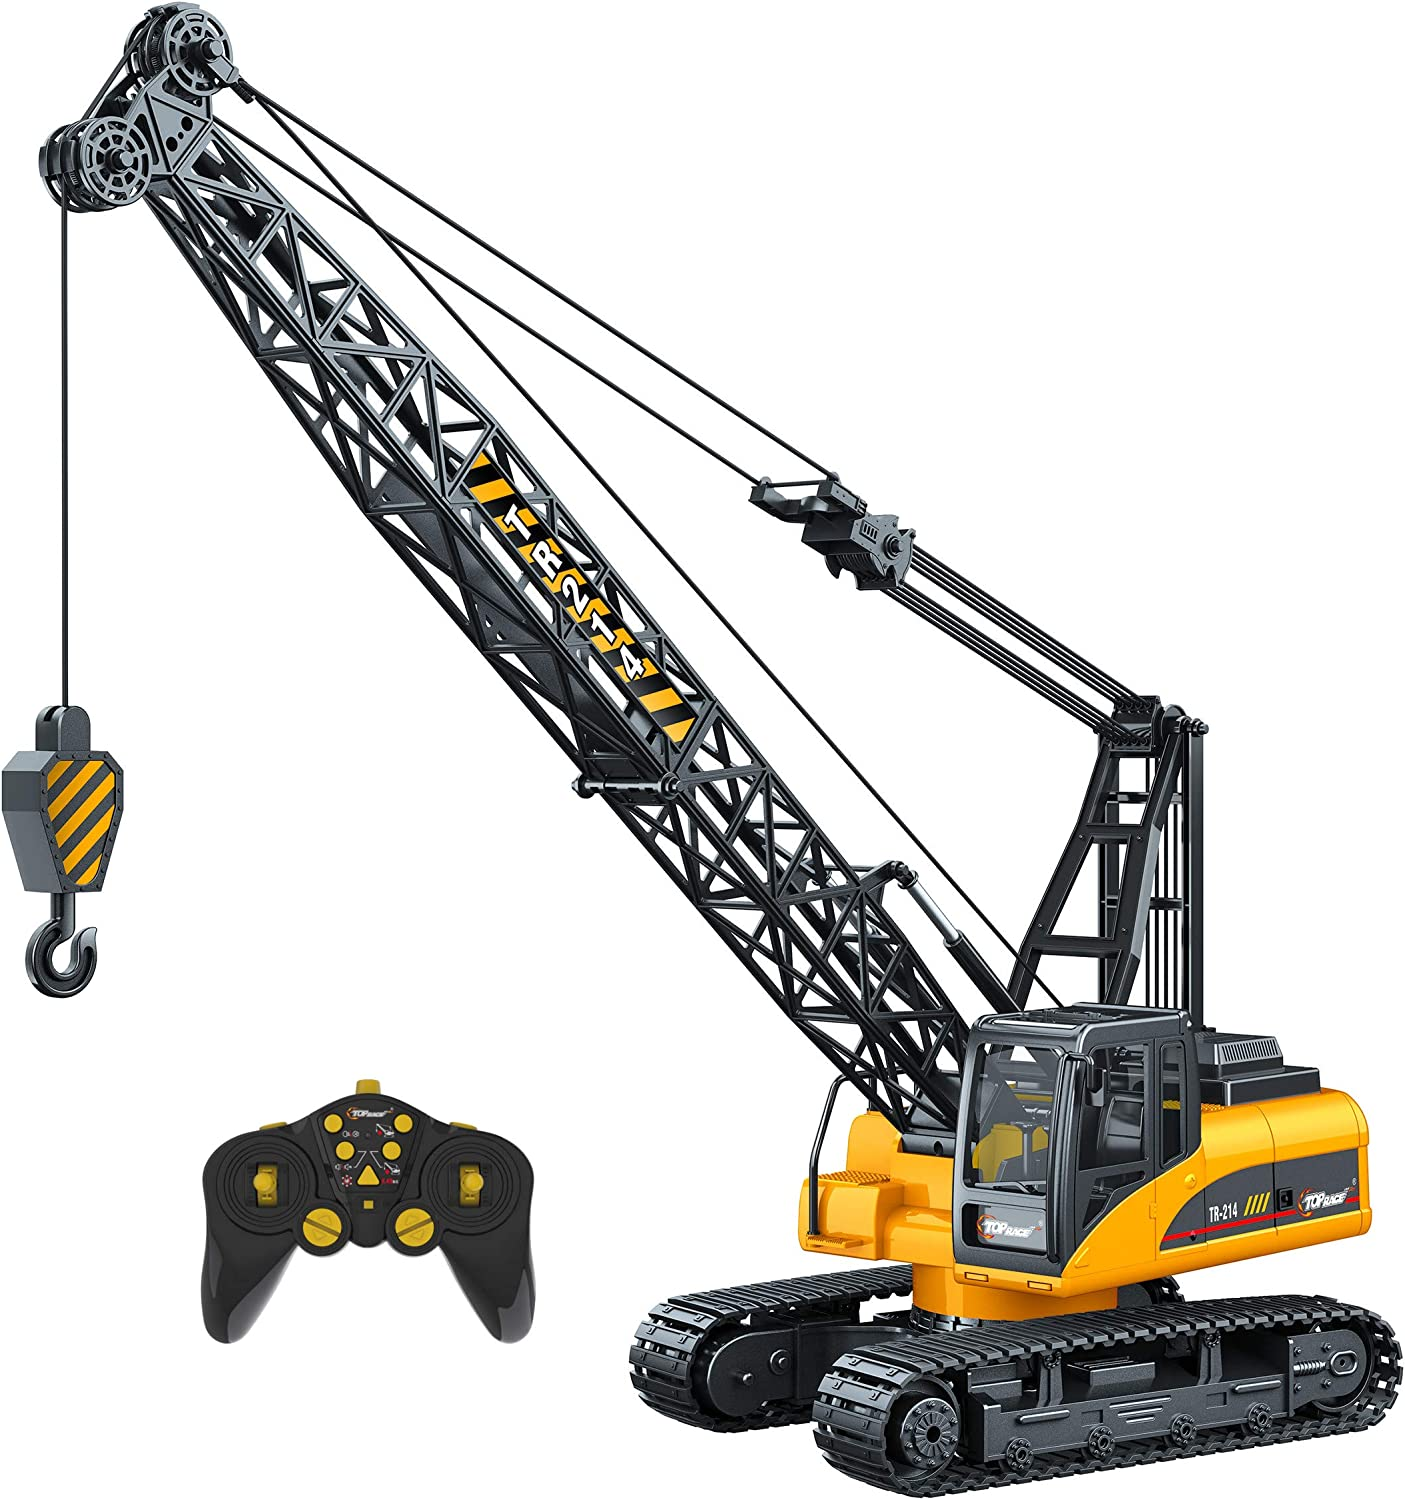 Top 9 Best Remote Control Cranes Toys (2020 Reviews & Buying Guide) 5